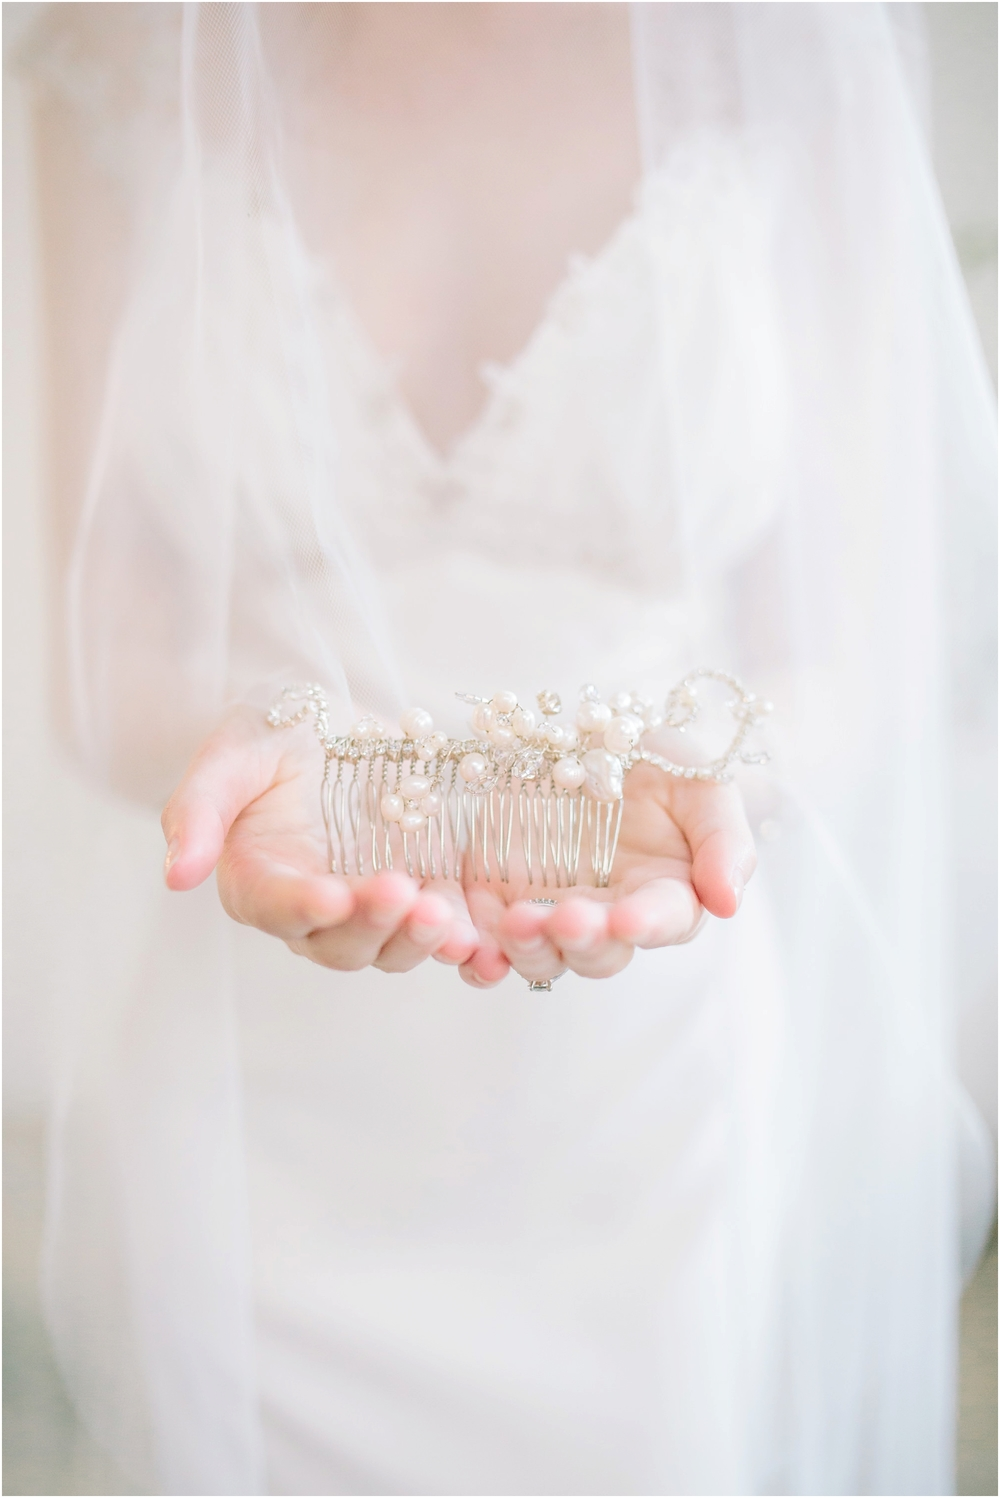 suzanne_li_photography_bridal_accessories_susan_dick_0009.jpg